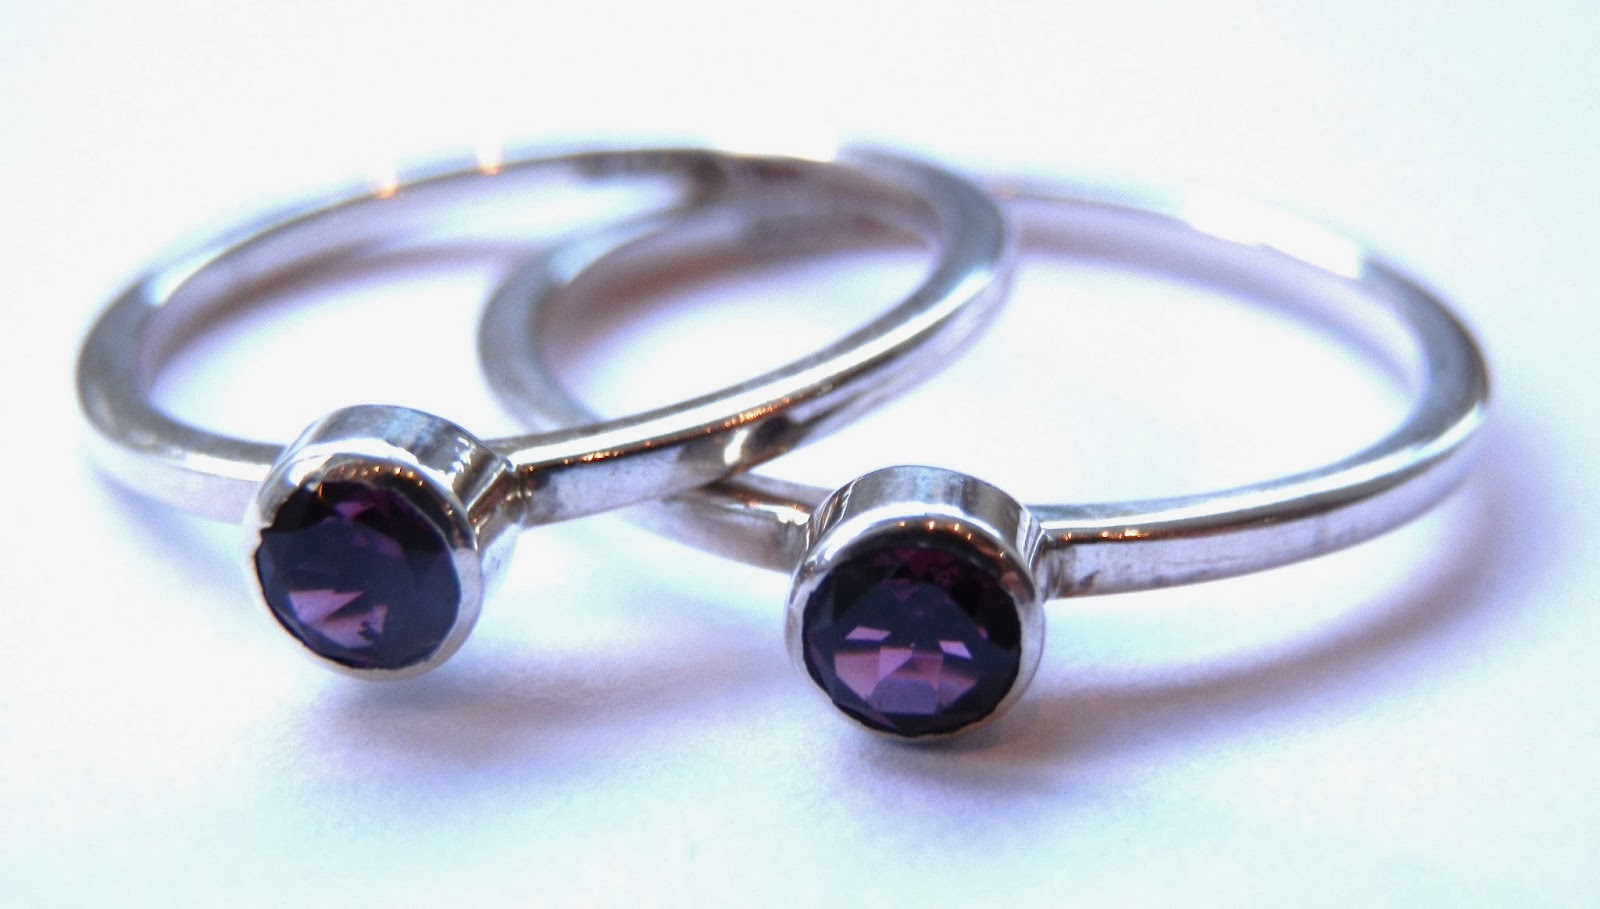 http://www.kirstytaylorjewellery.com/stacking-rings/109-silver-and-amethyst-stacking-ring.html